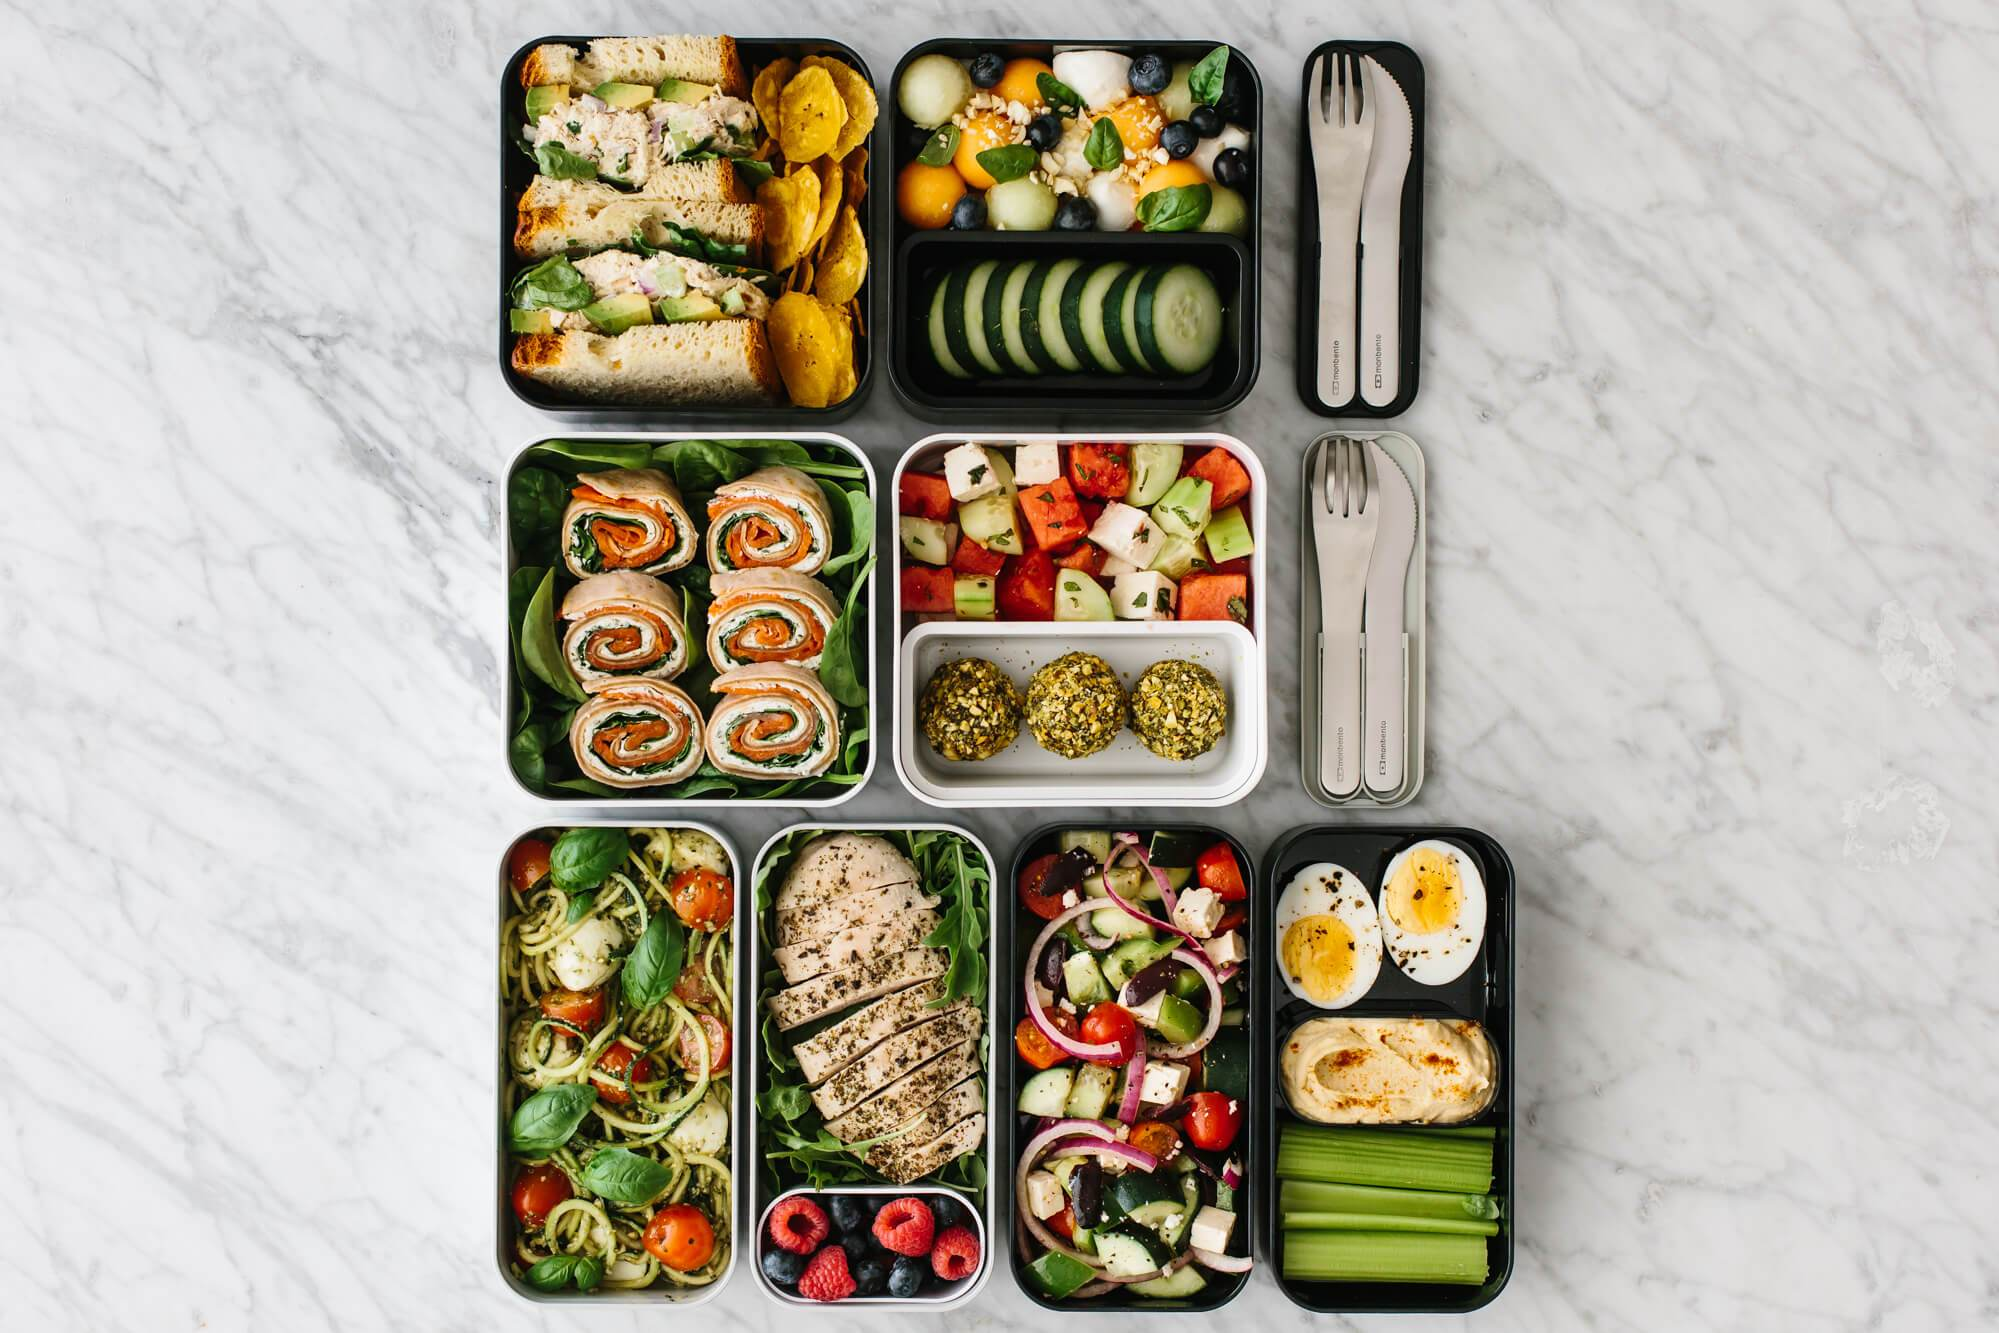 Bento Box Lunch Ideas - For Work or School  Downshiftology